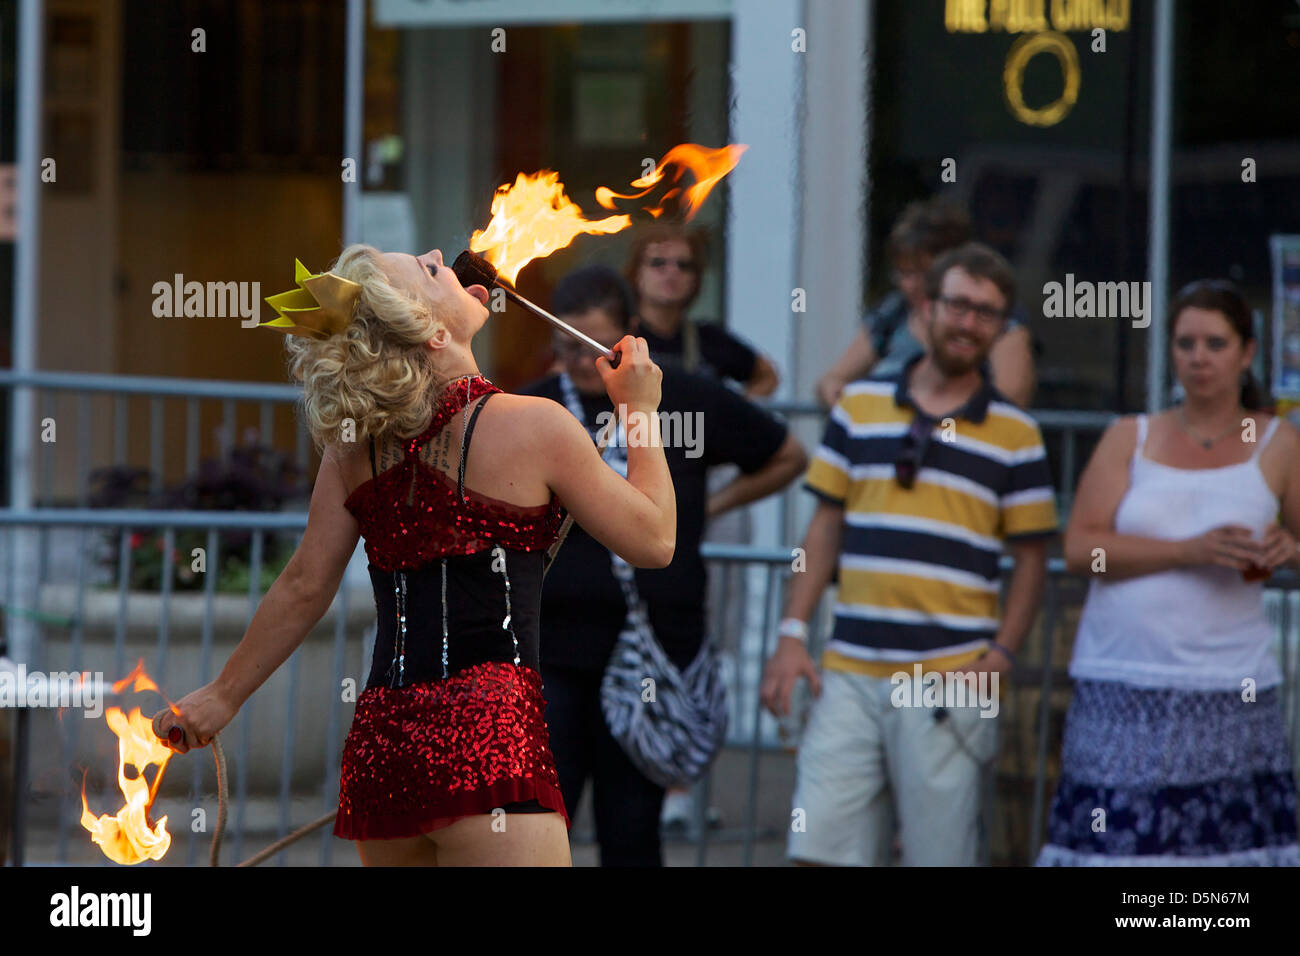 Fire eater performer at Hatter Days Street Party New Holland Brewing Co. - Stock Image